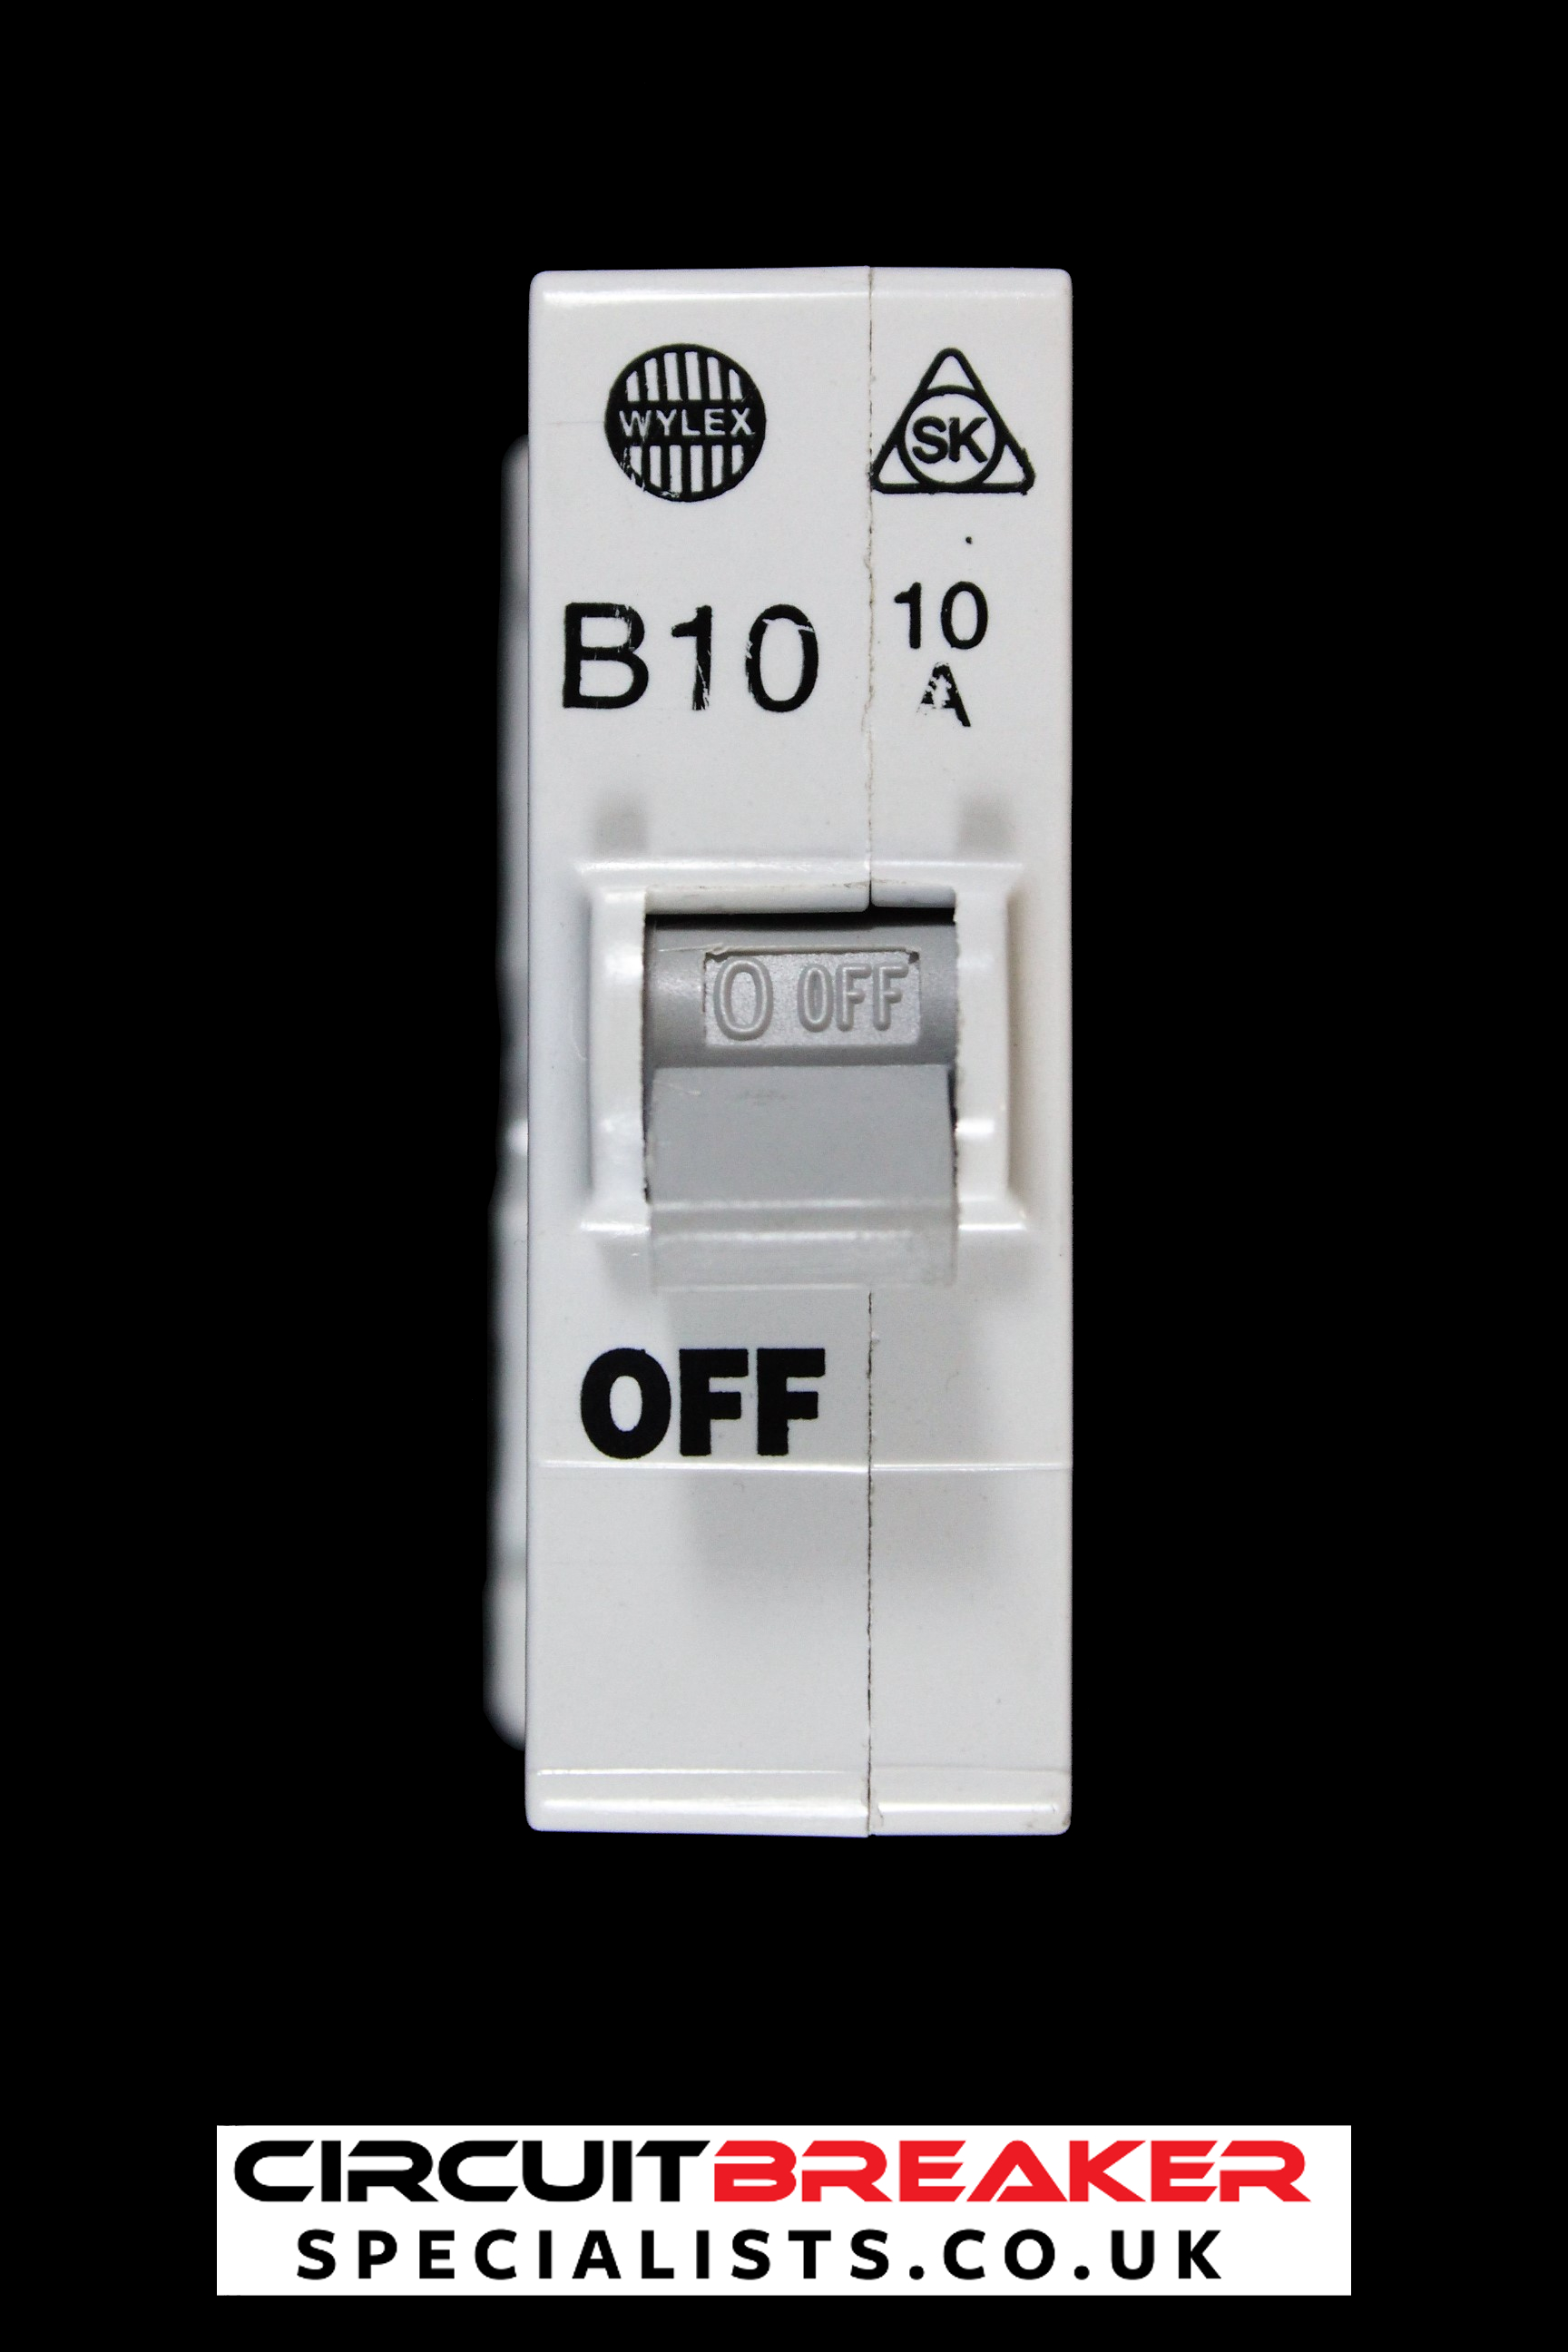 WYLEX 10 AMP TYPE B 3 kA MCB CIRCUIT BREAKER SK PUSH PLUG IN